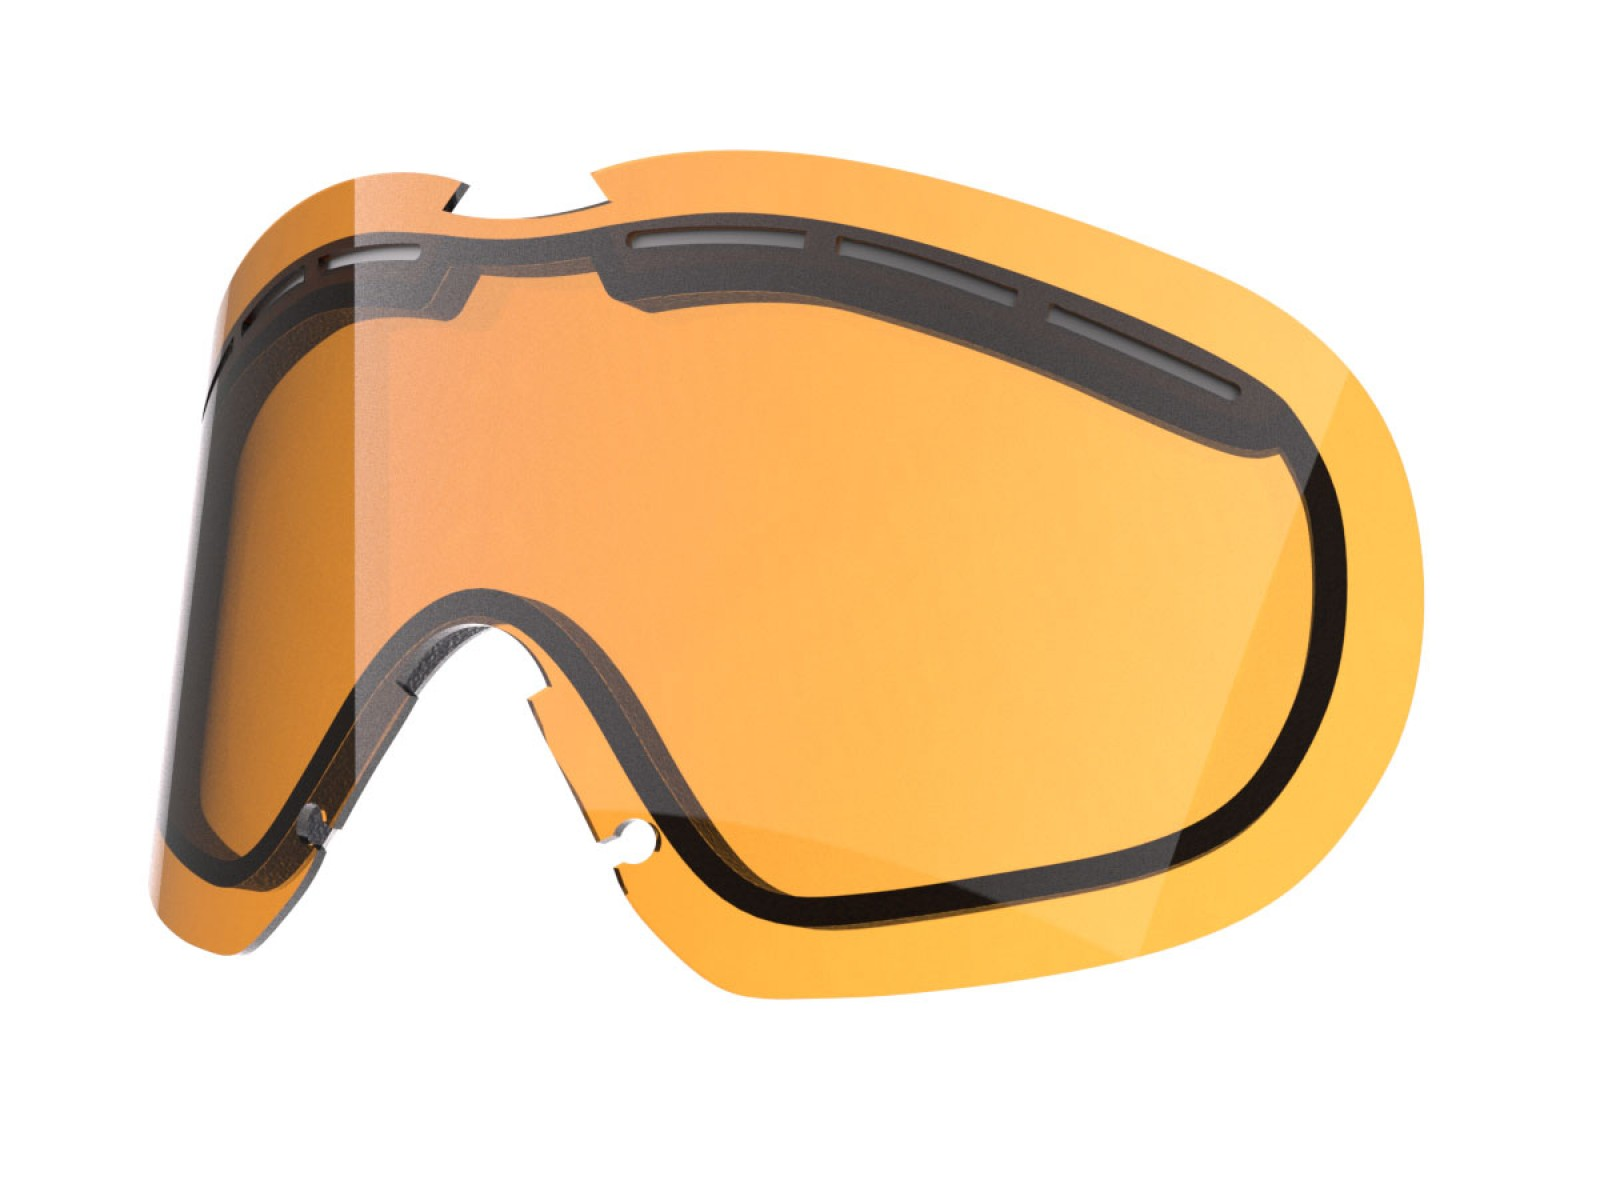 PERSIMMON LENS FOR MIND GOGGLE